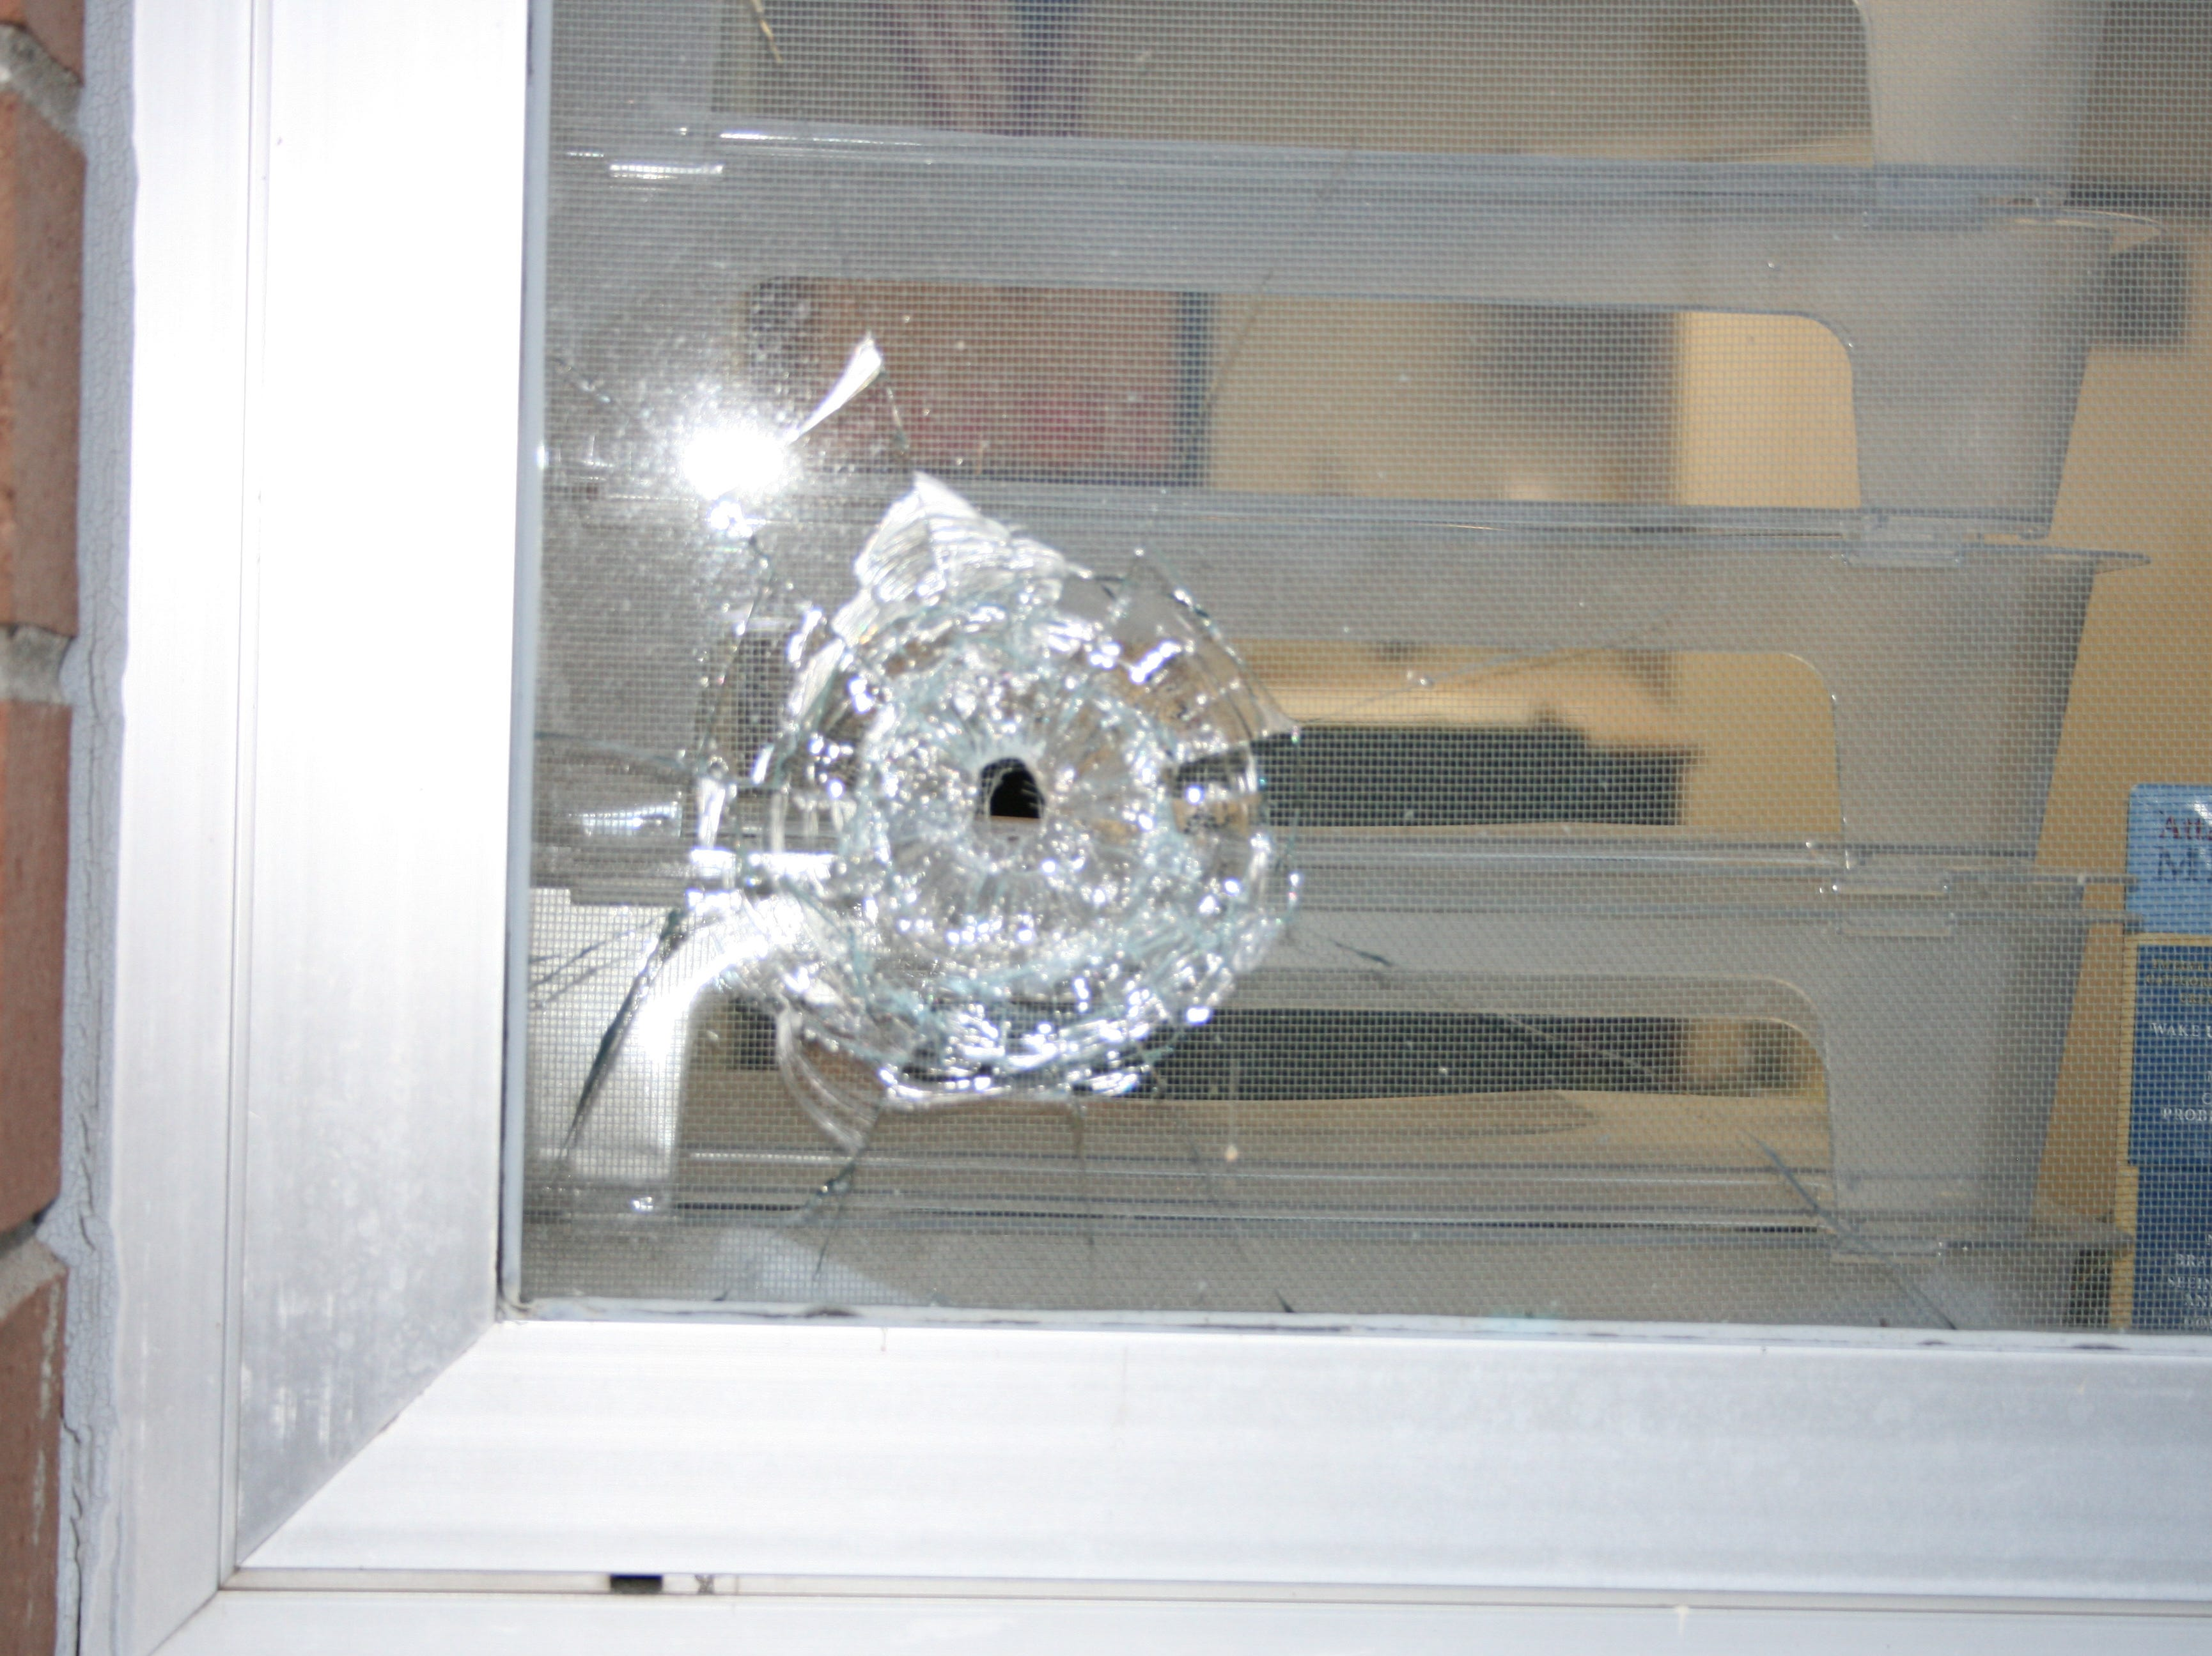 Bullet hole in a window at Marinette High School after the hostage taking incident on November 29, 2010. Provided by Marinette Police Department